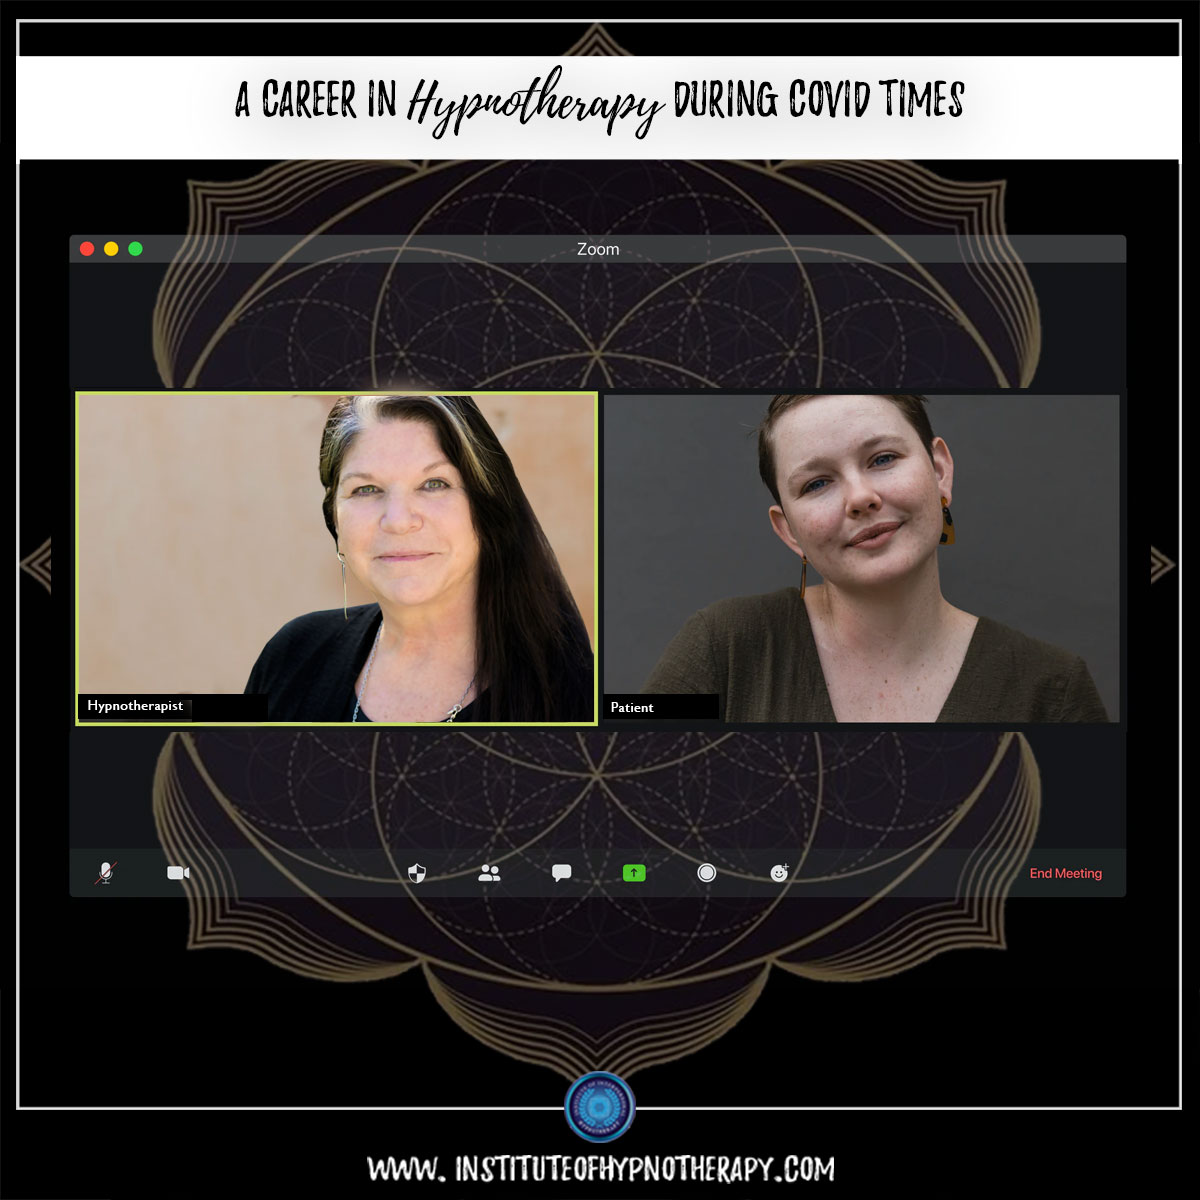 Hypnotherapy – A Career in Hypnotherapy During COVID Times